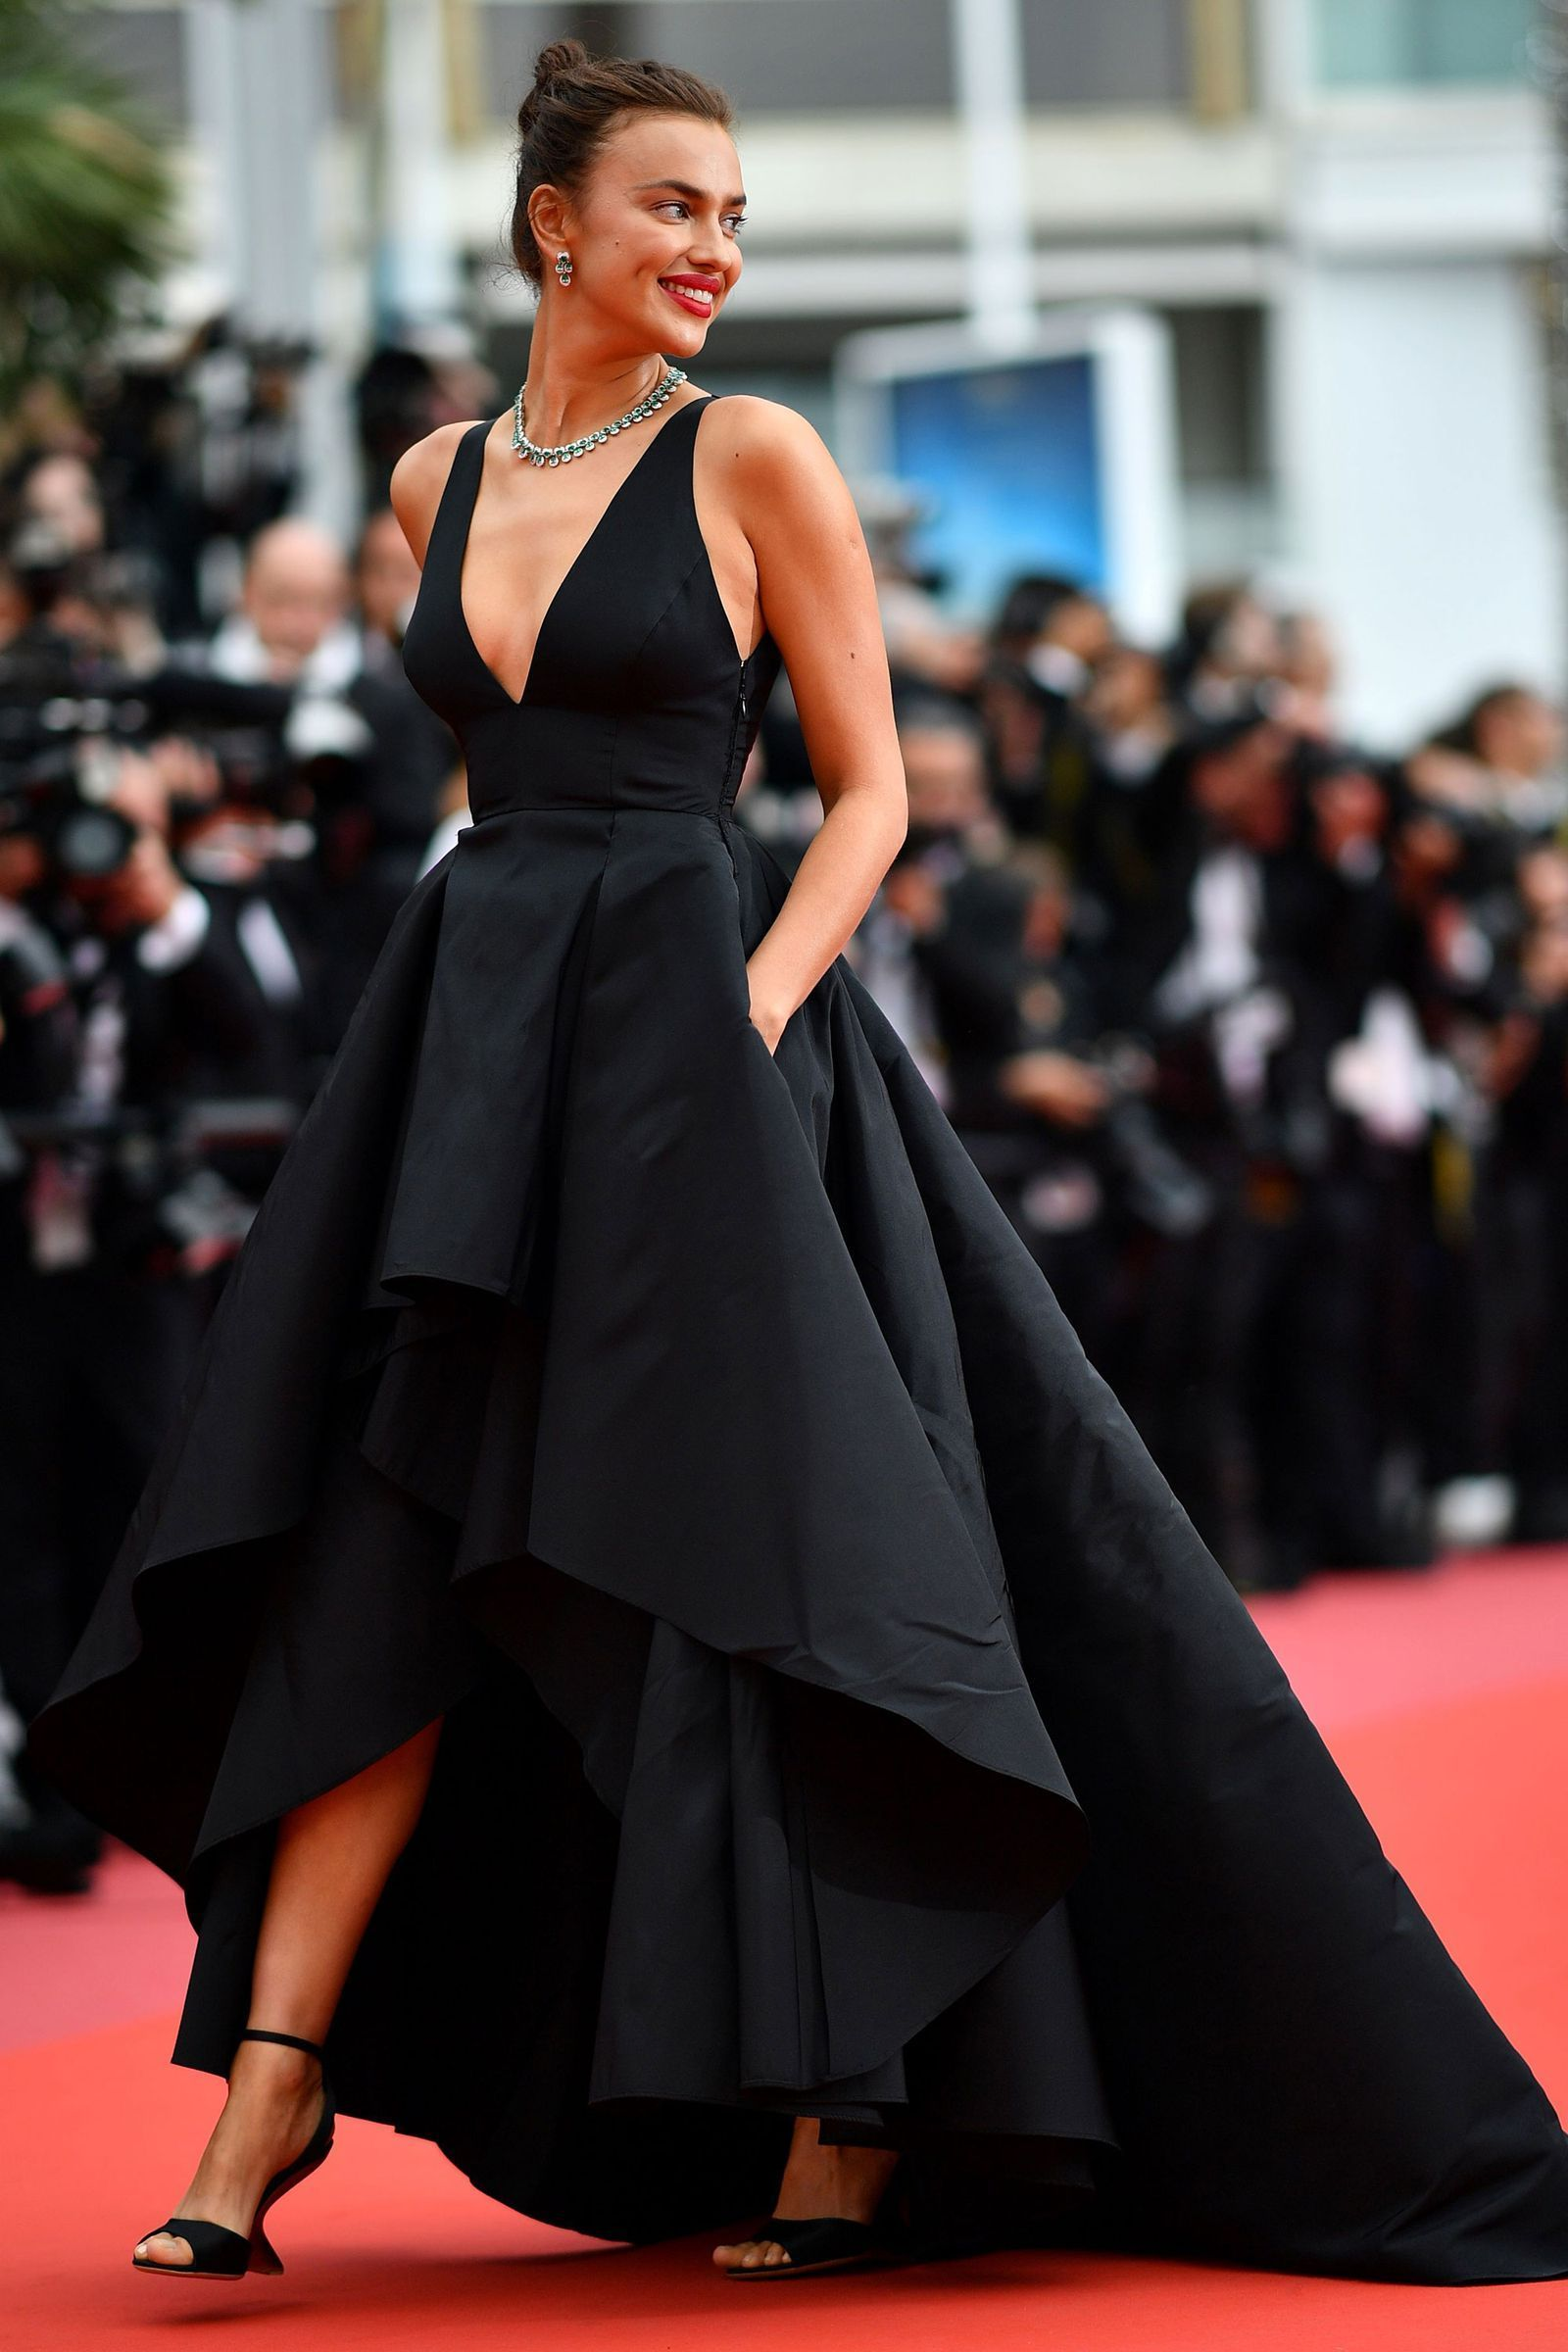 The 2018 Cannes Film Festival red carpet #carpets The 2018 Cannes Film Festival red carpet- HarpersBAZAARUK